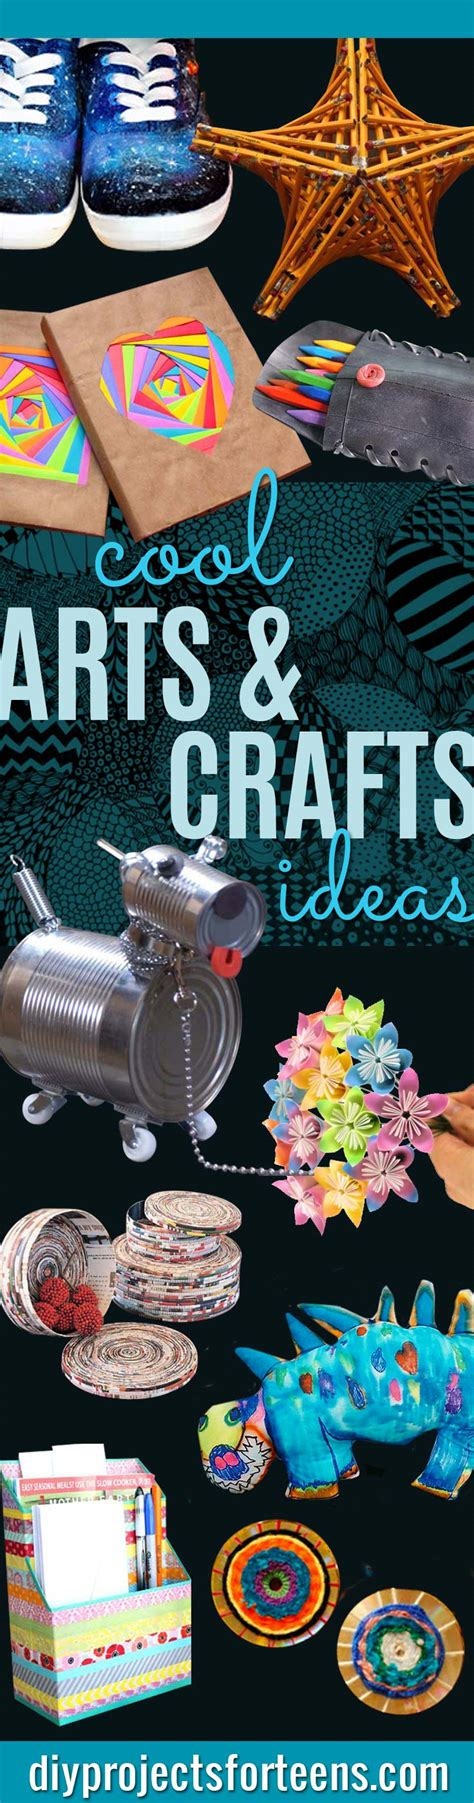 cool arts and crafts for cool arts and crafts ideas for diy projects for